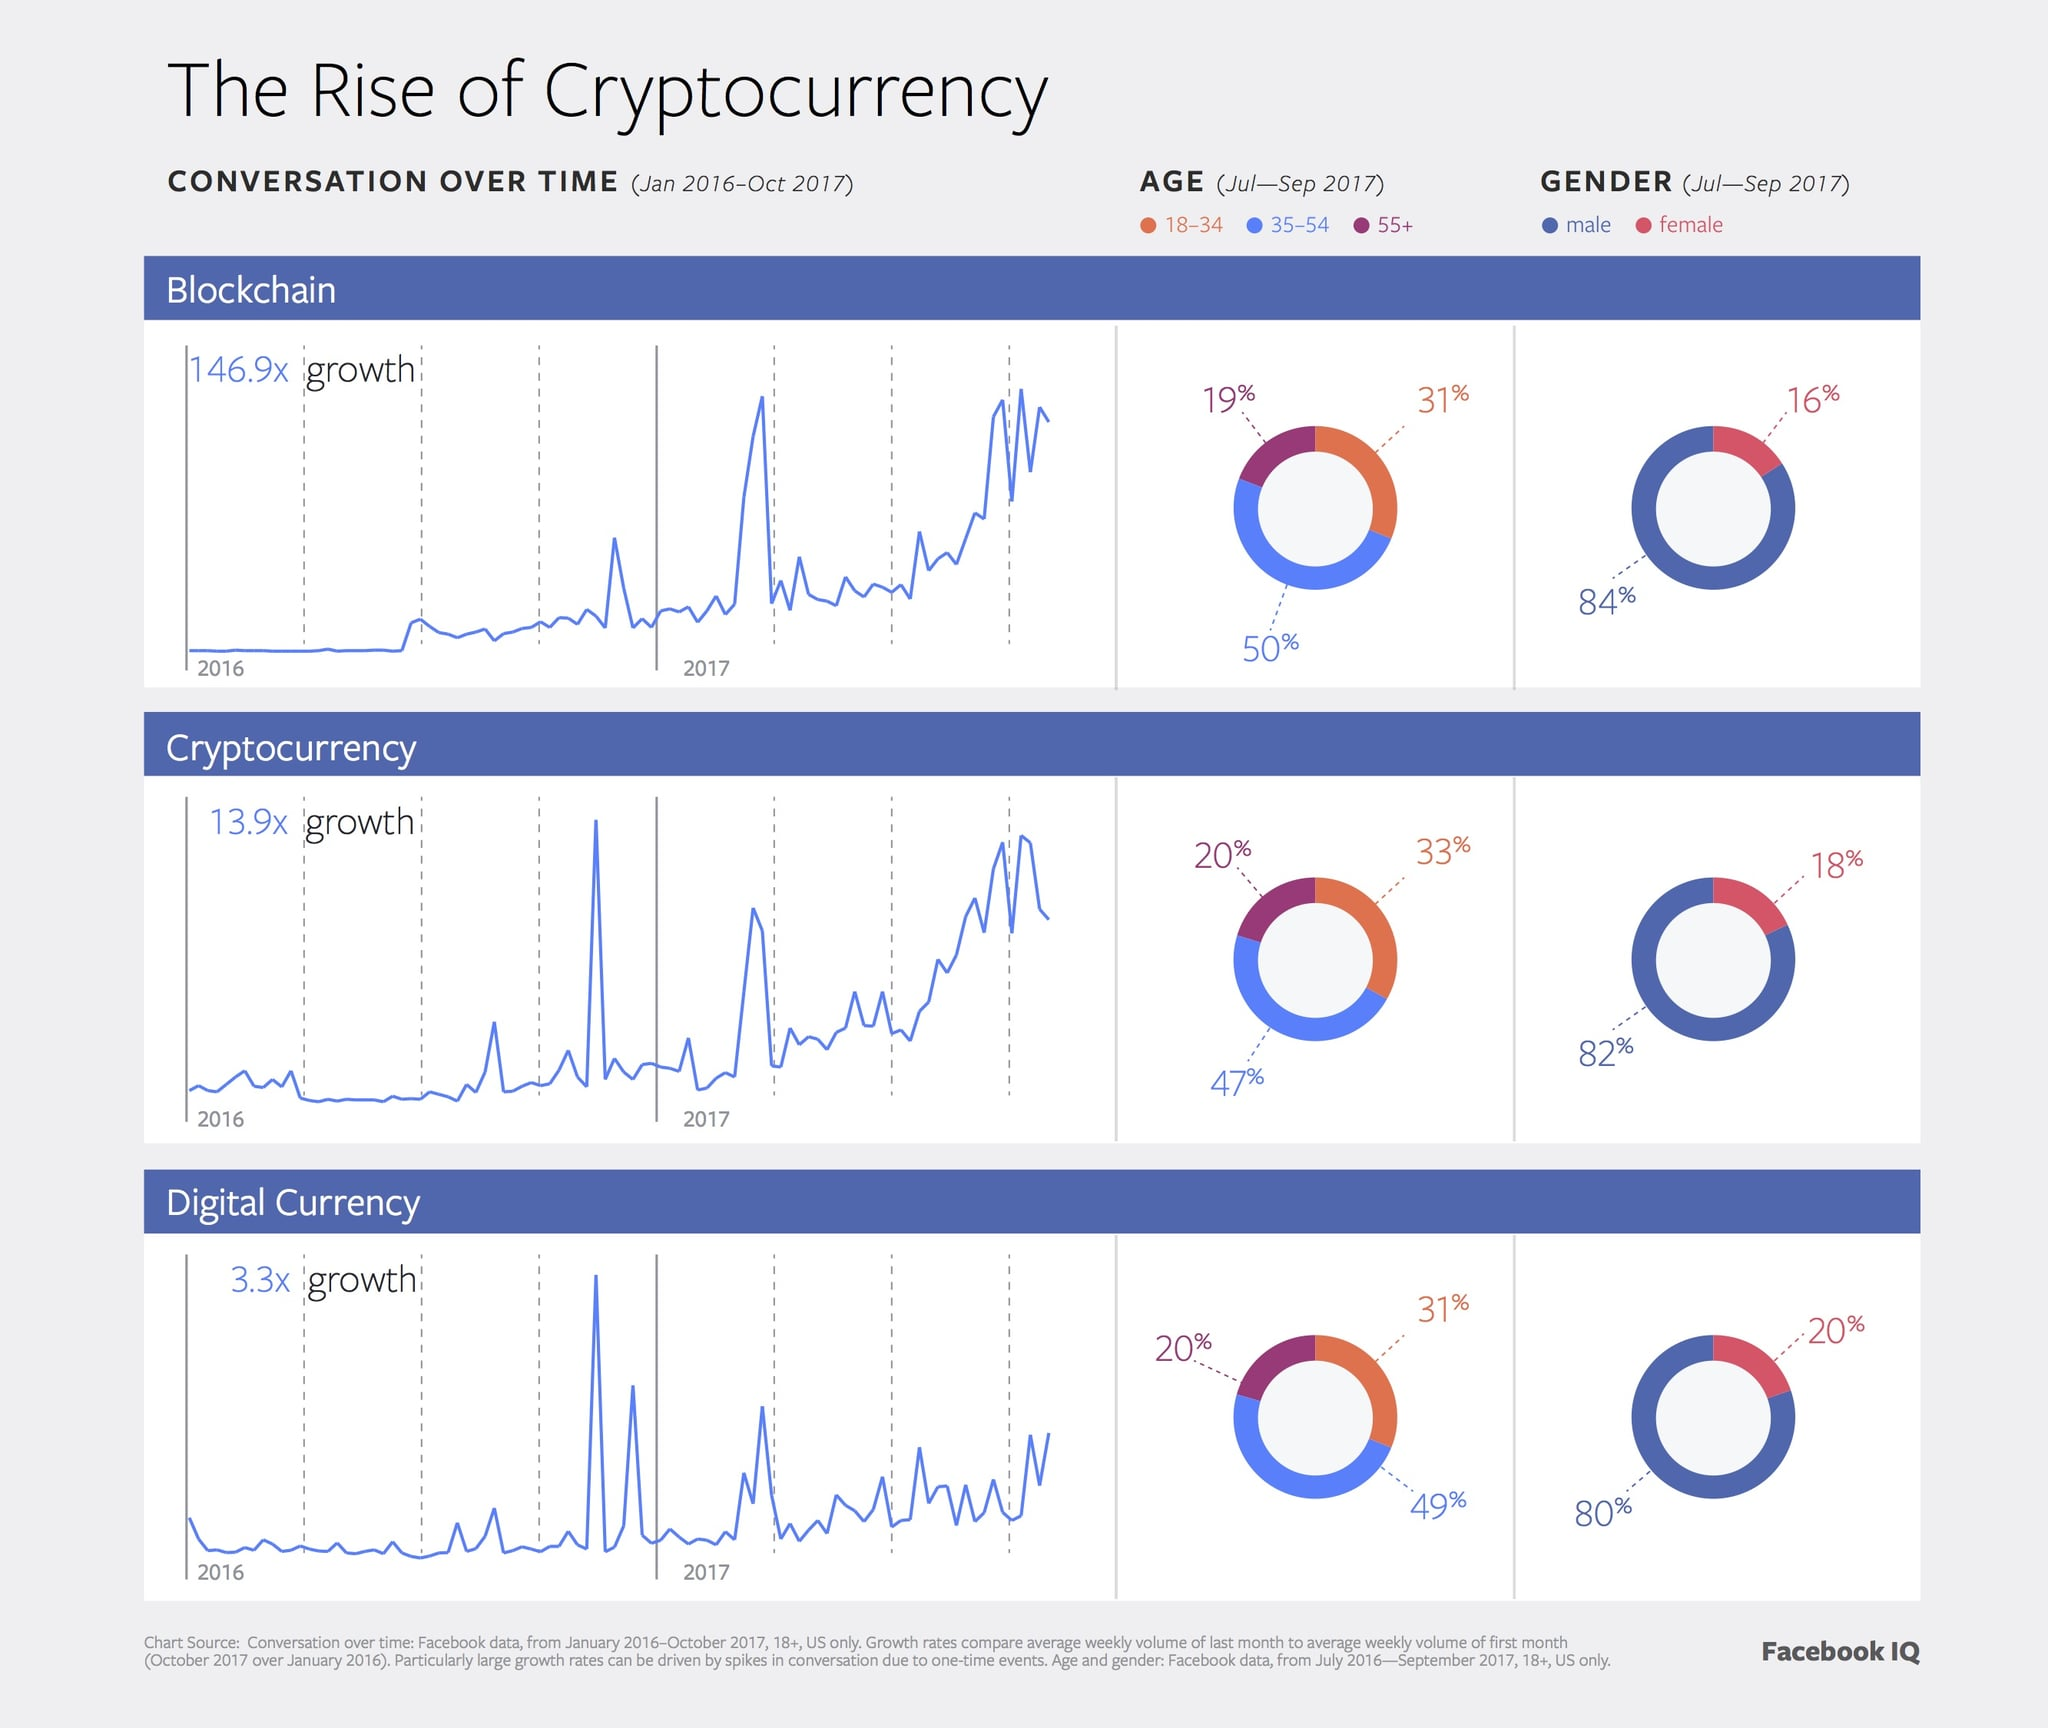 Cryptocurrency website keeps popping up